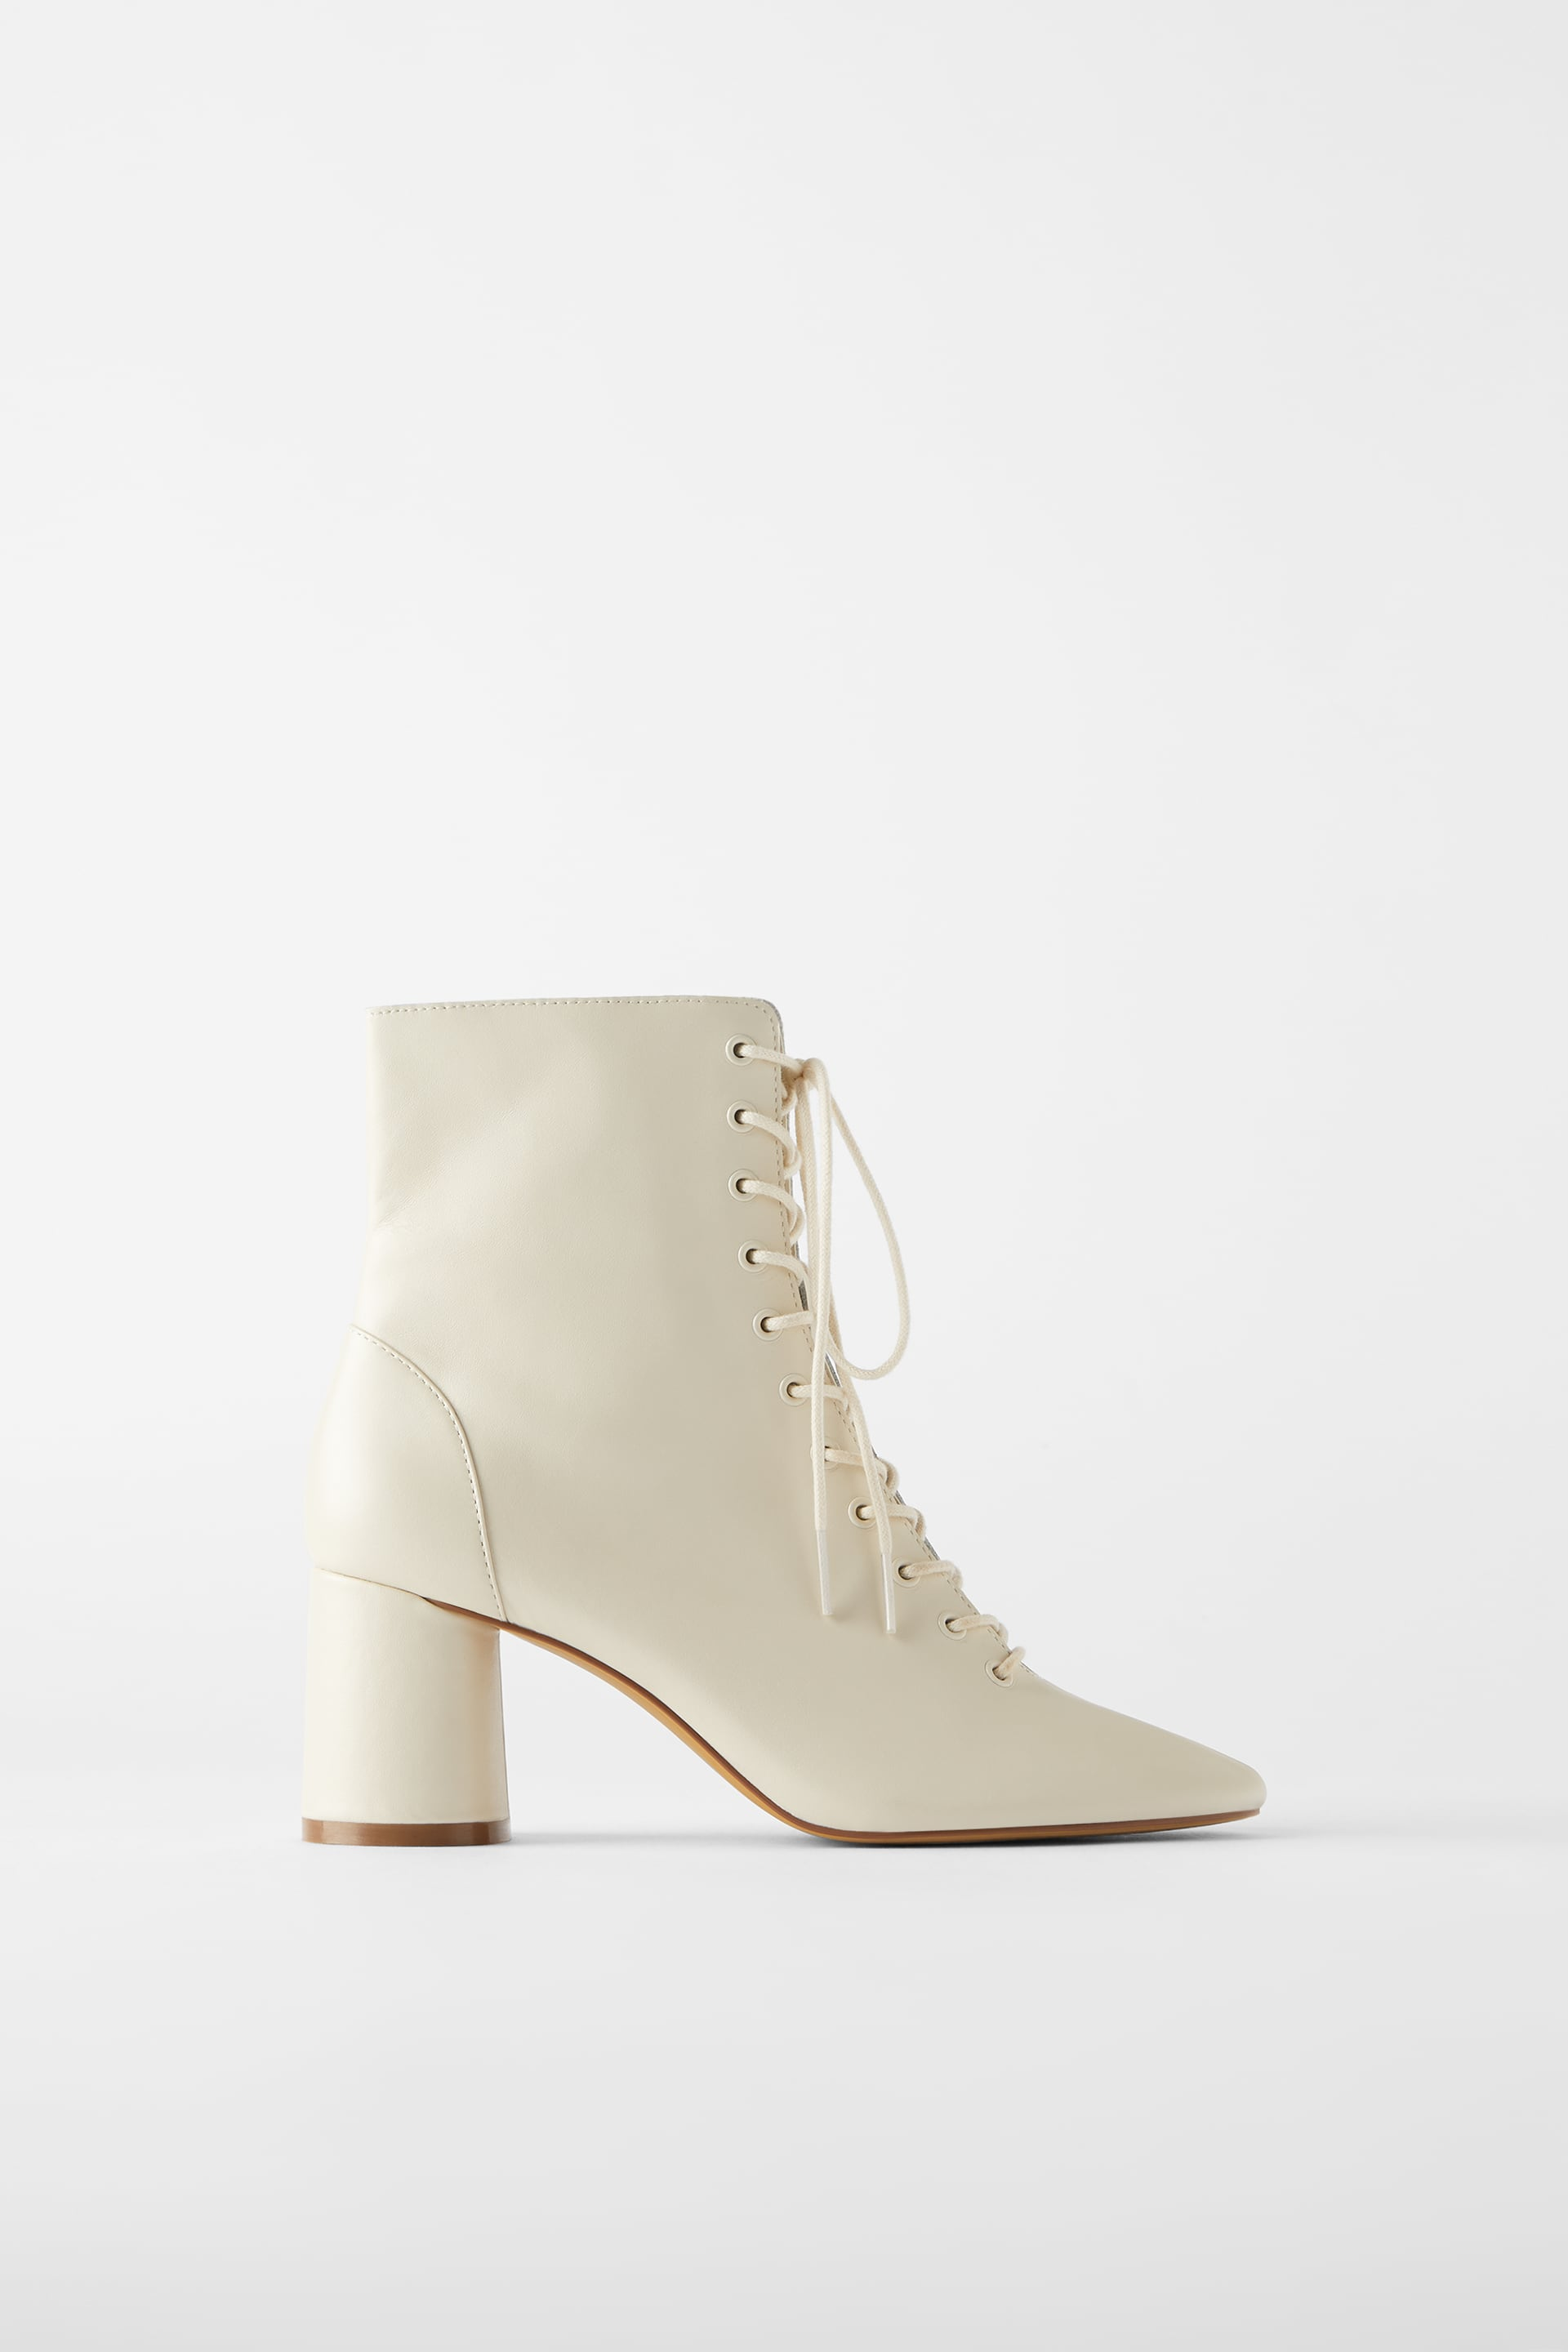 2. white boots